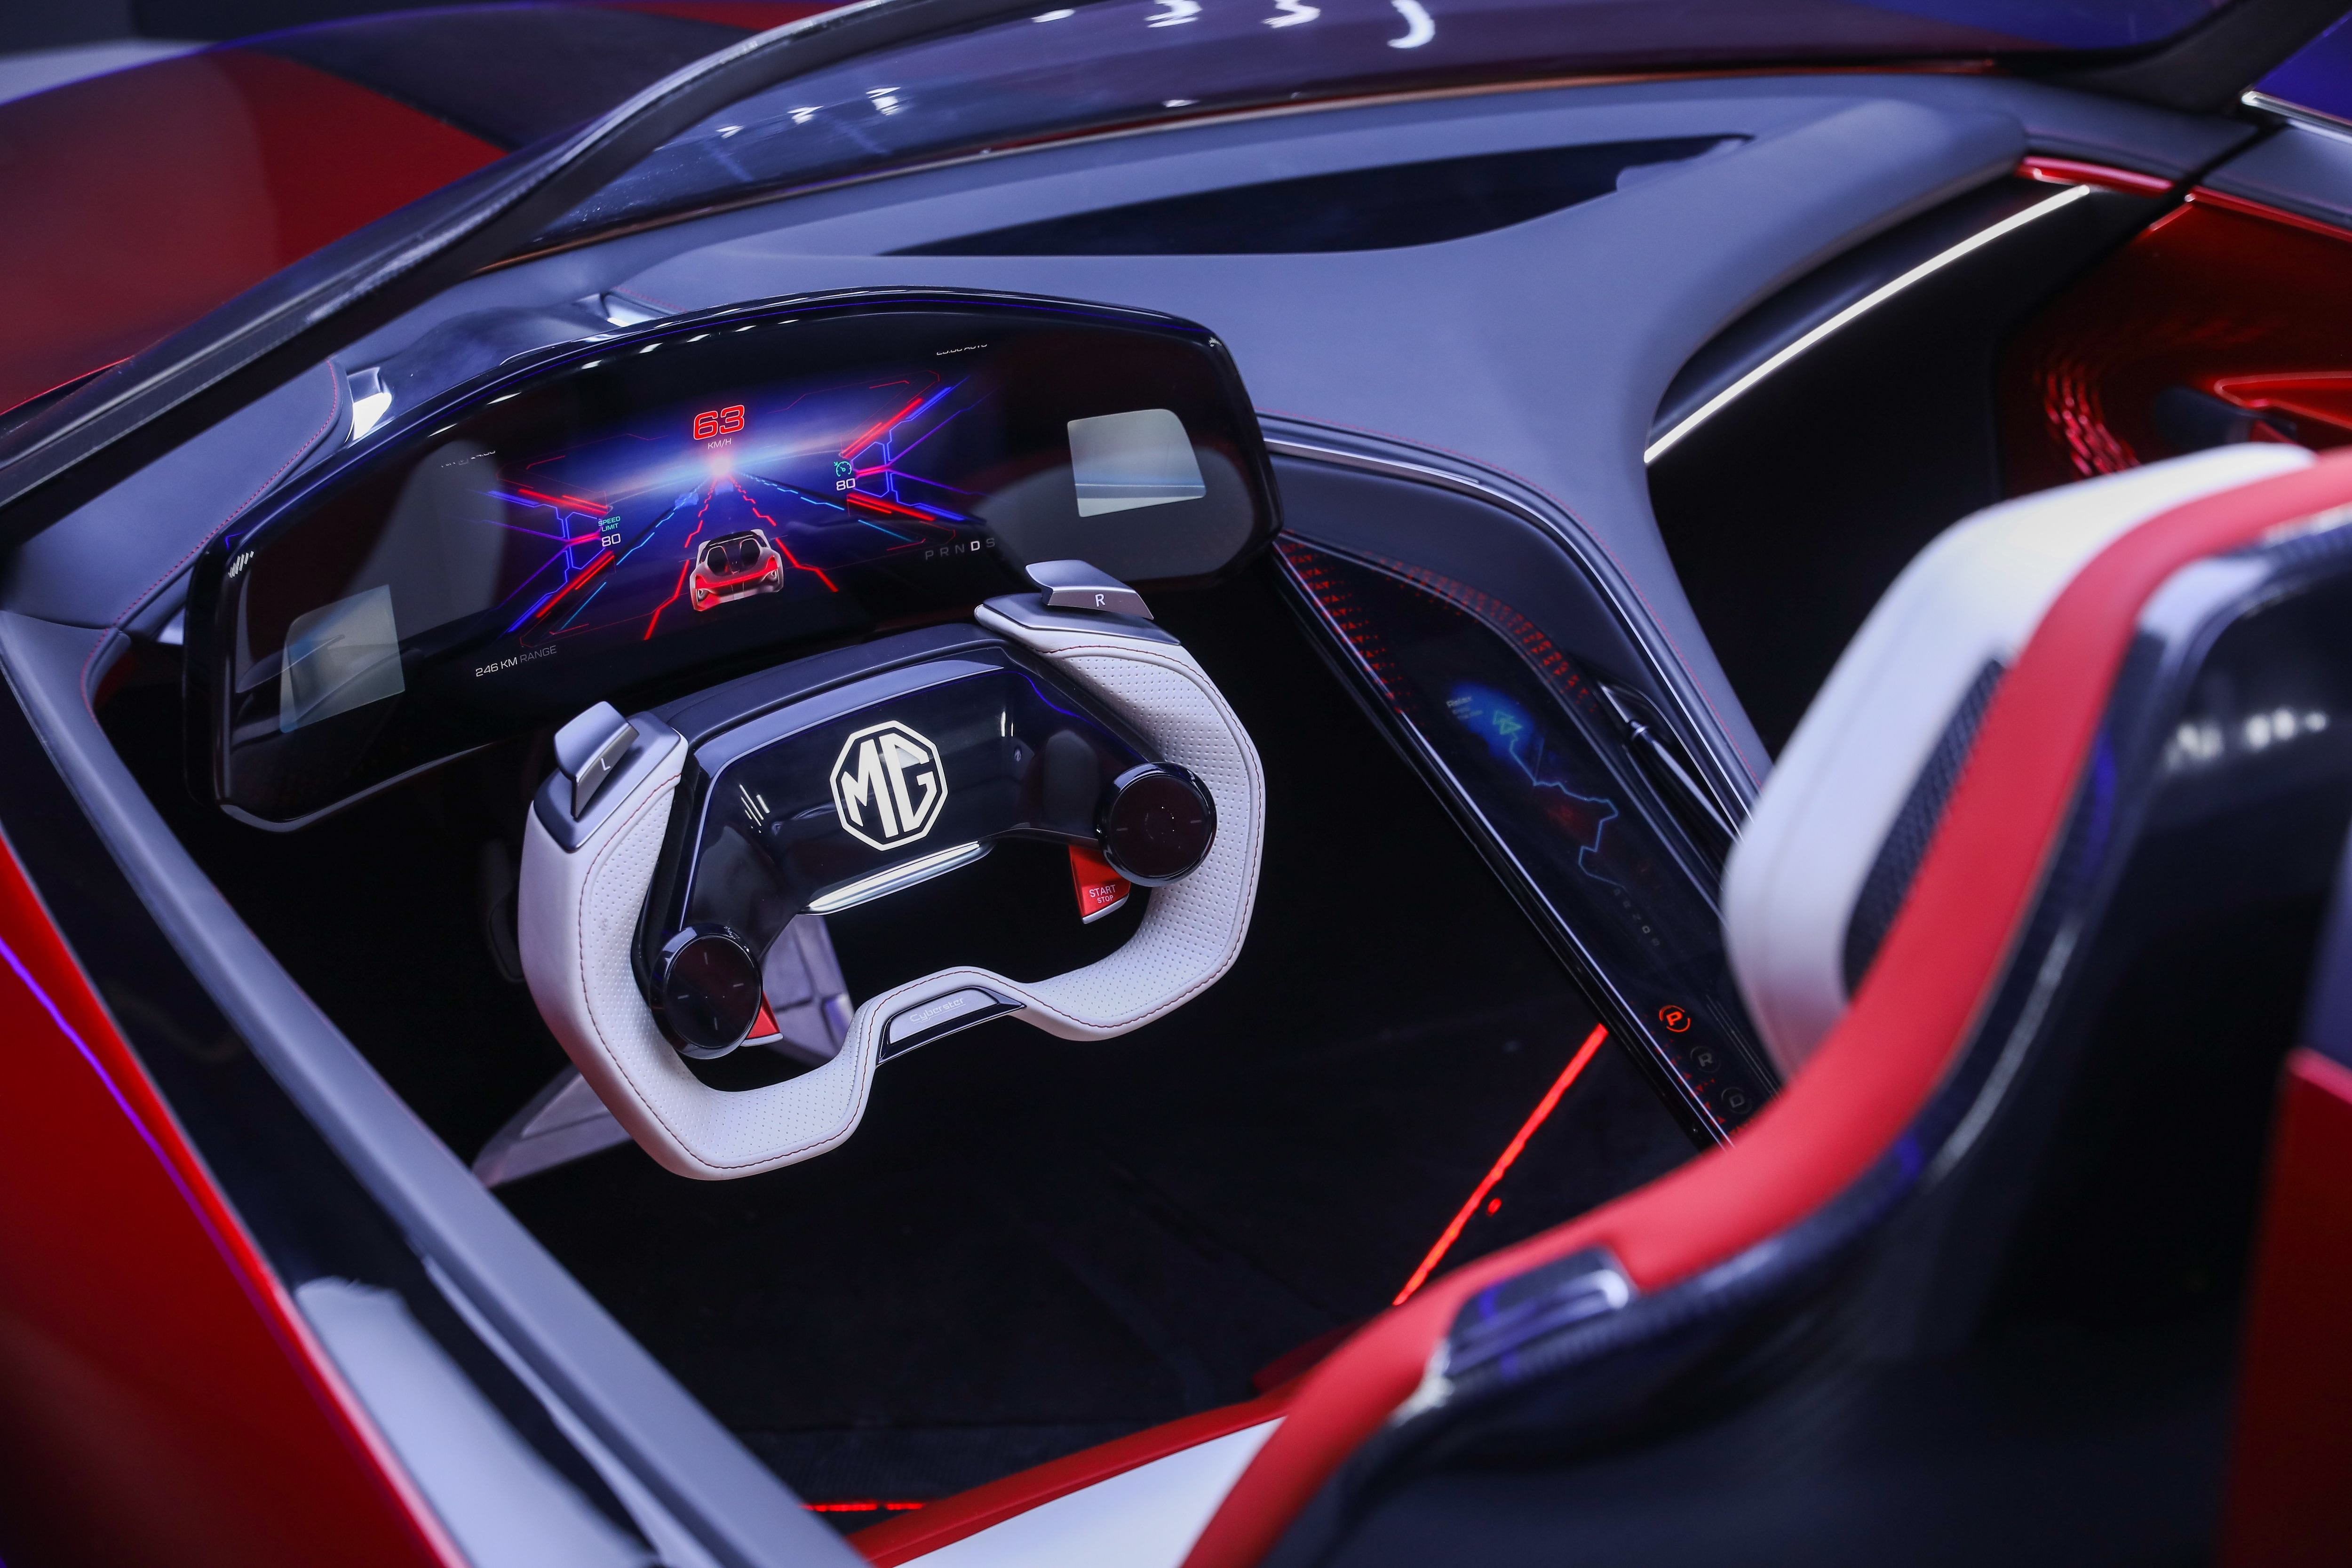 The cockpit of the MG Cyberster appears like a gaming console with the steering wheel and the all-digital instrument cluster.